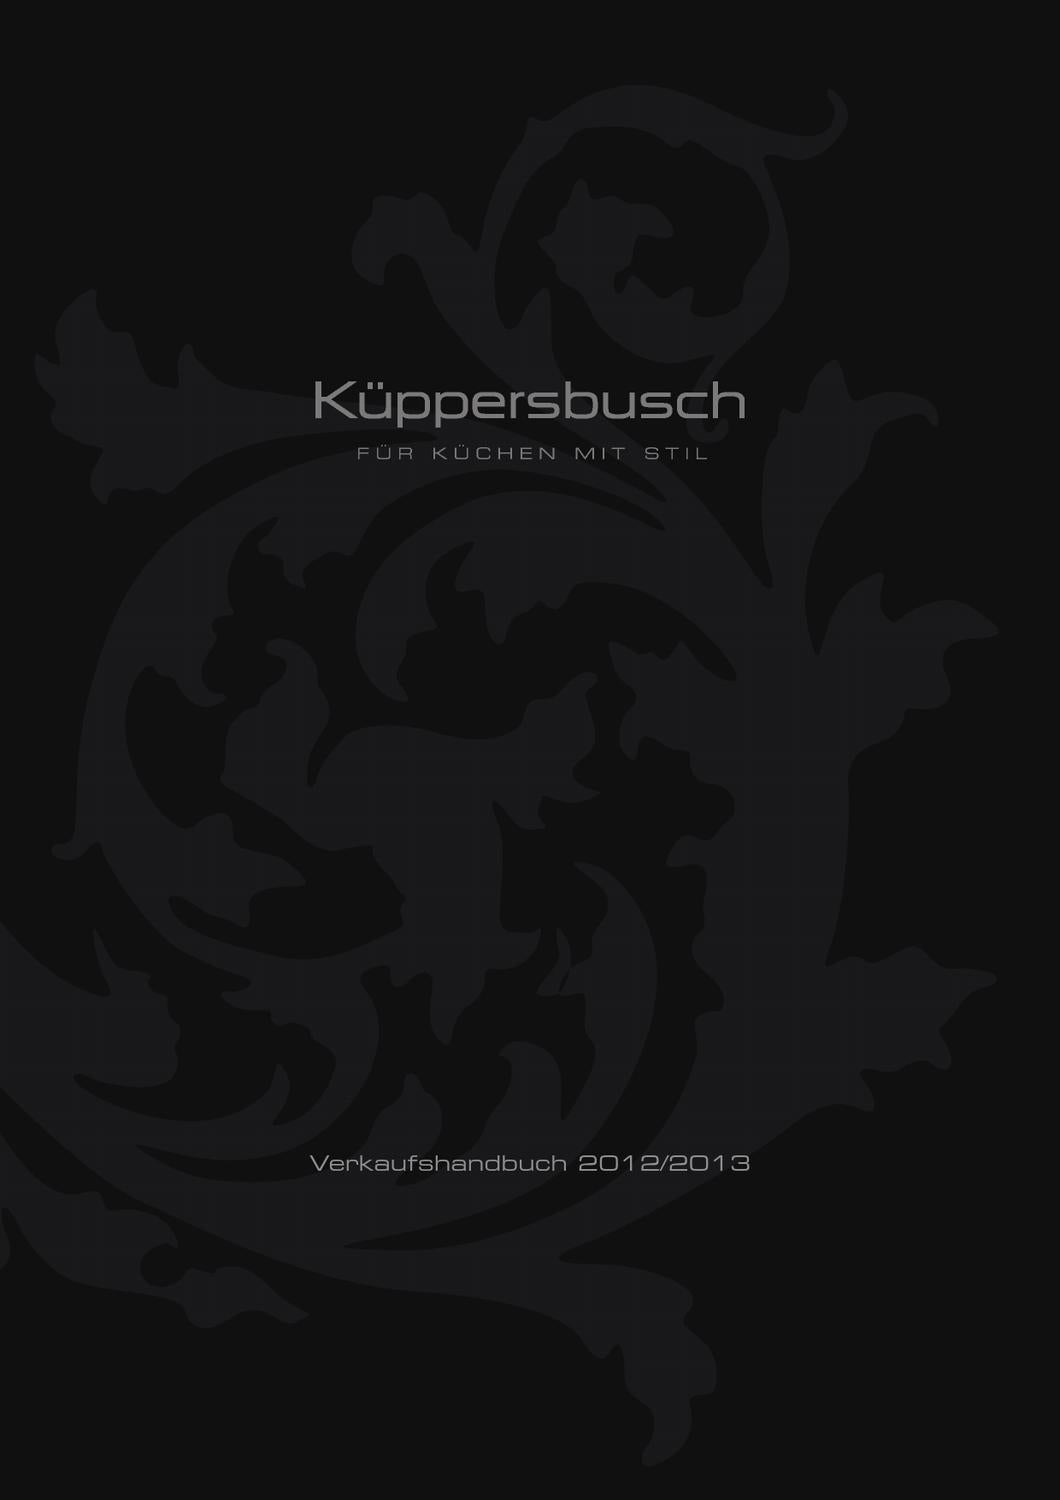 Küppersbusch By Roland Annerl Issuu